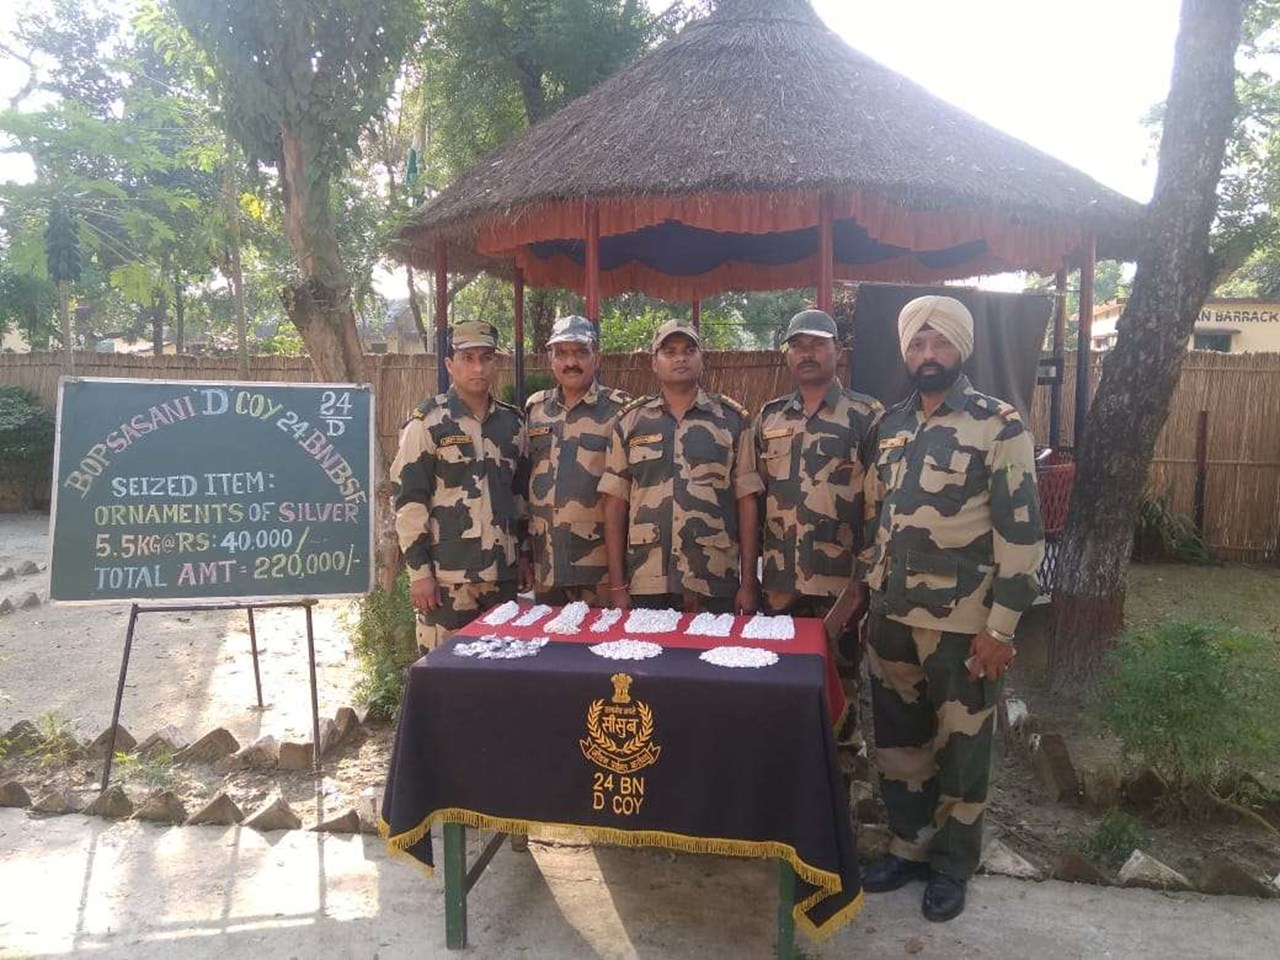 BSF motercyclist team 'JANBAZ' made seven world records in five days since Oct 15